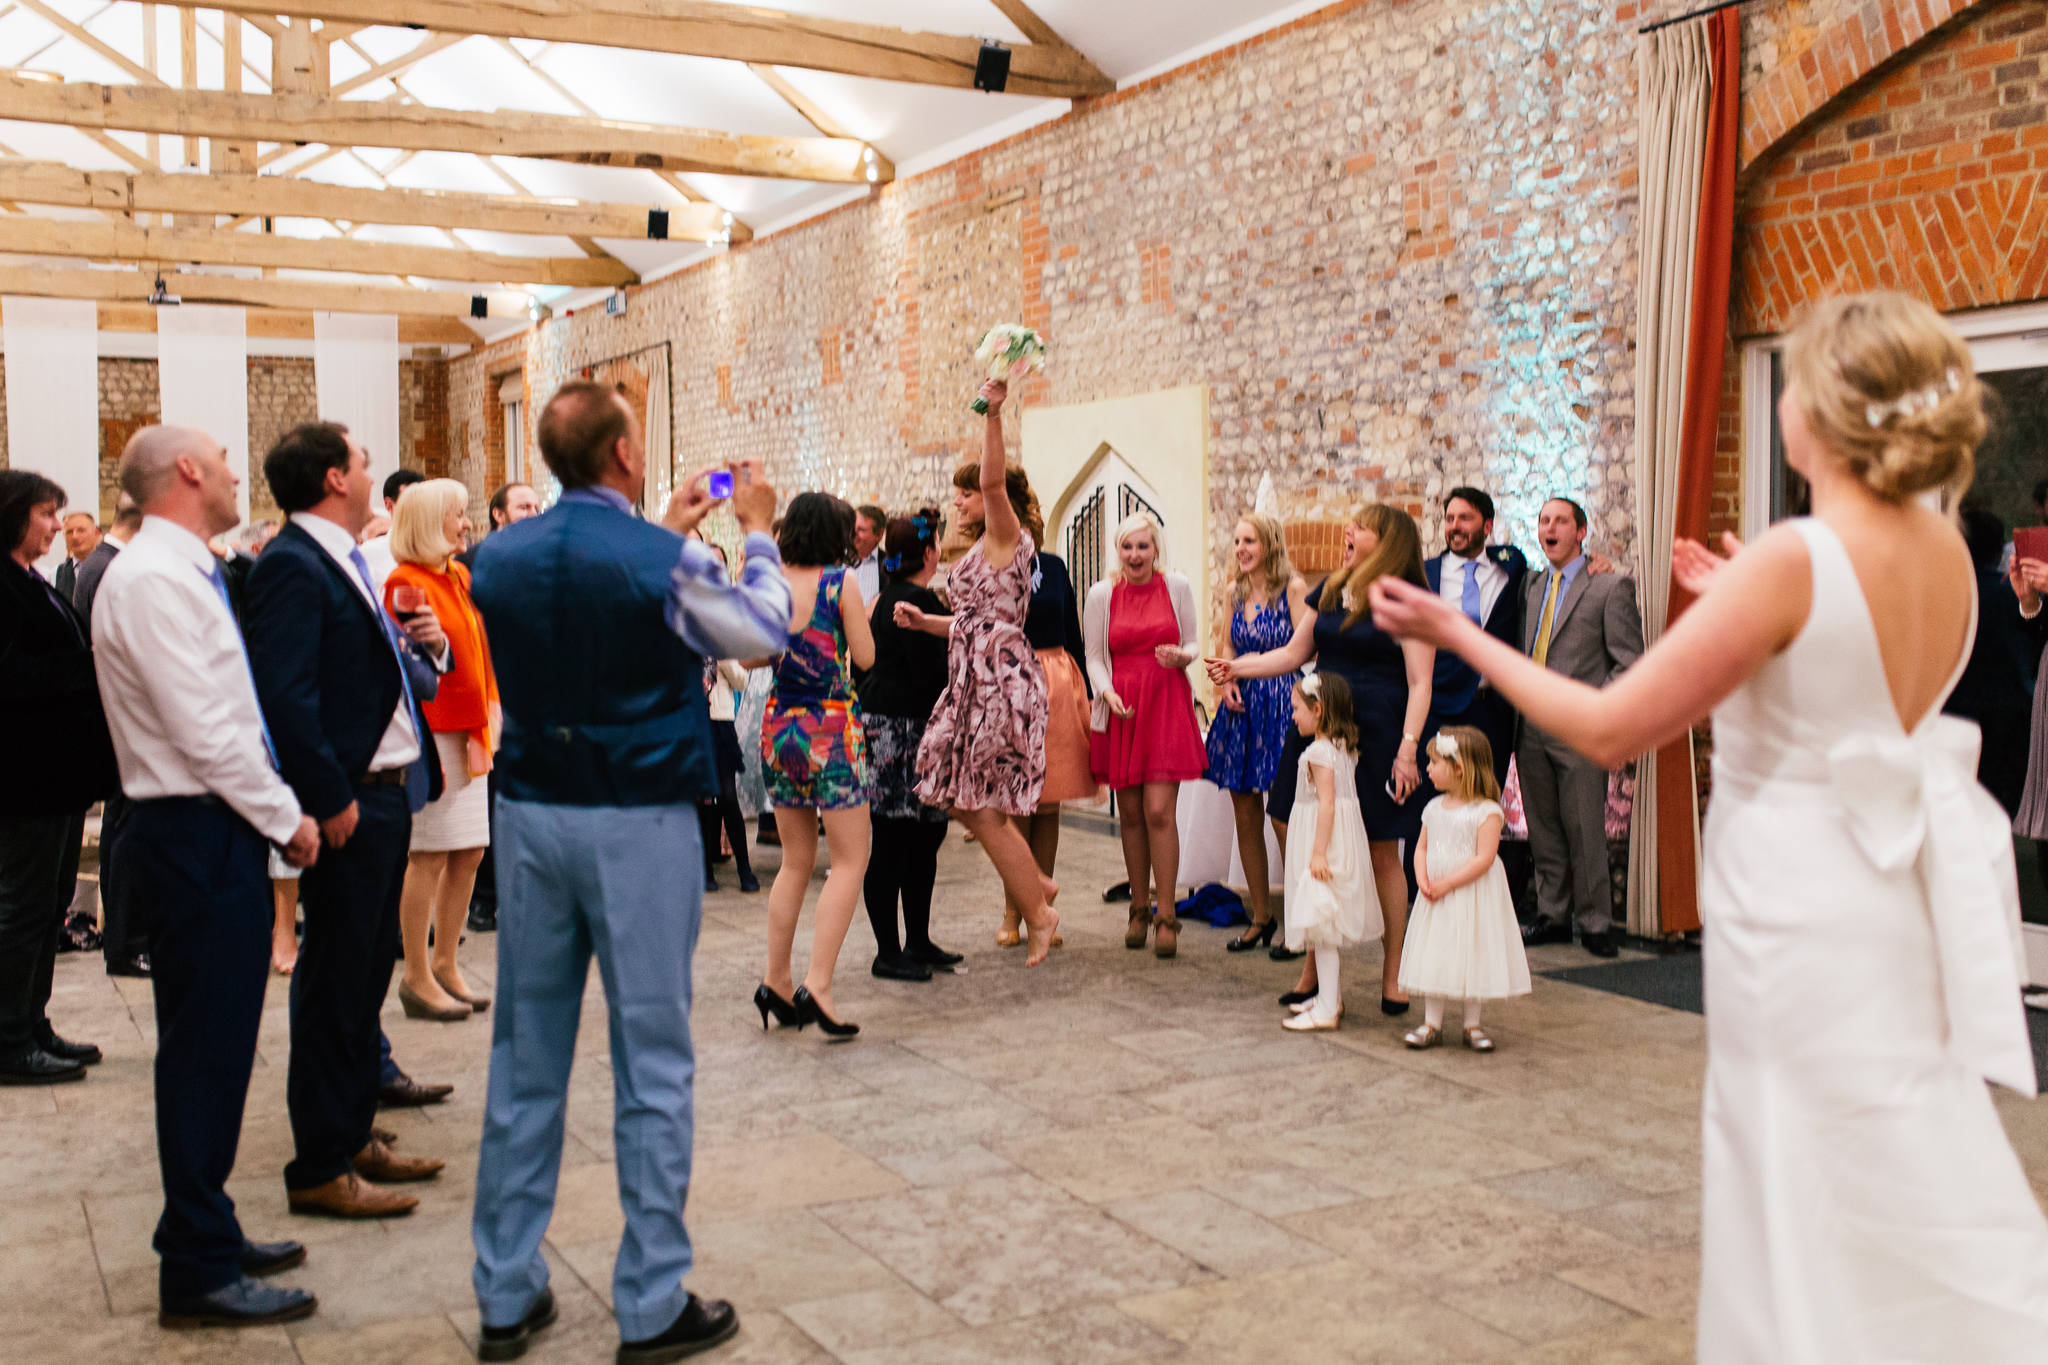 Farbridge Barn Wedding Creative Alternative Photo Chichester Joanna Nicole Photography (111 of 133).jpg